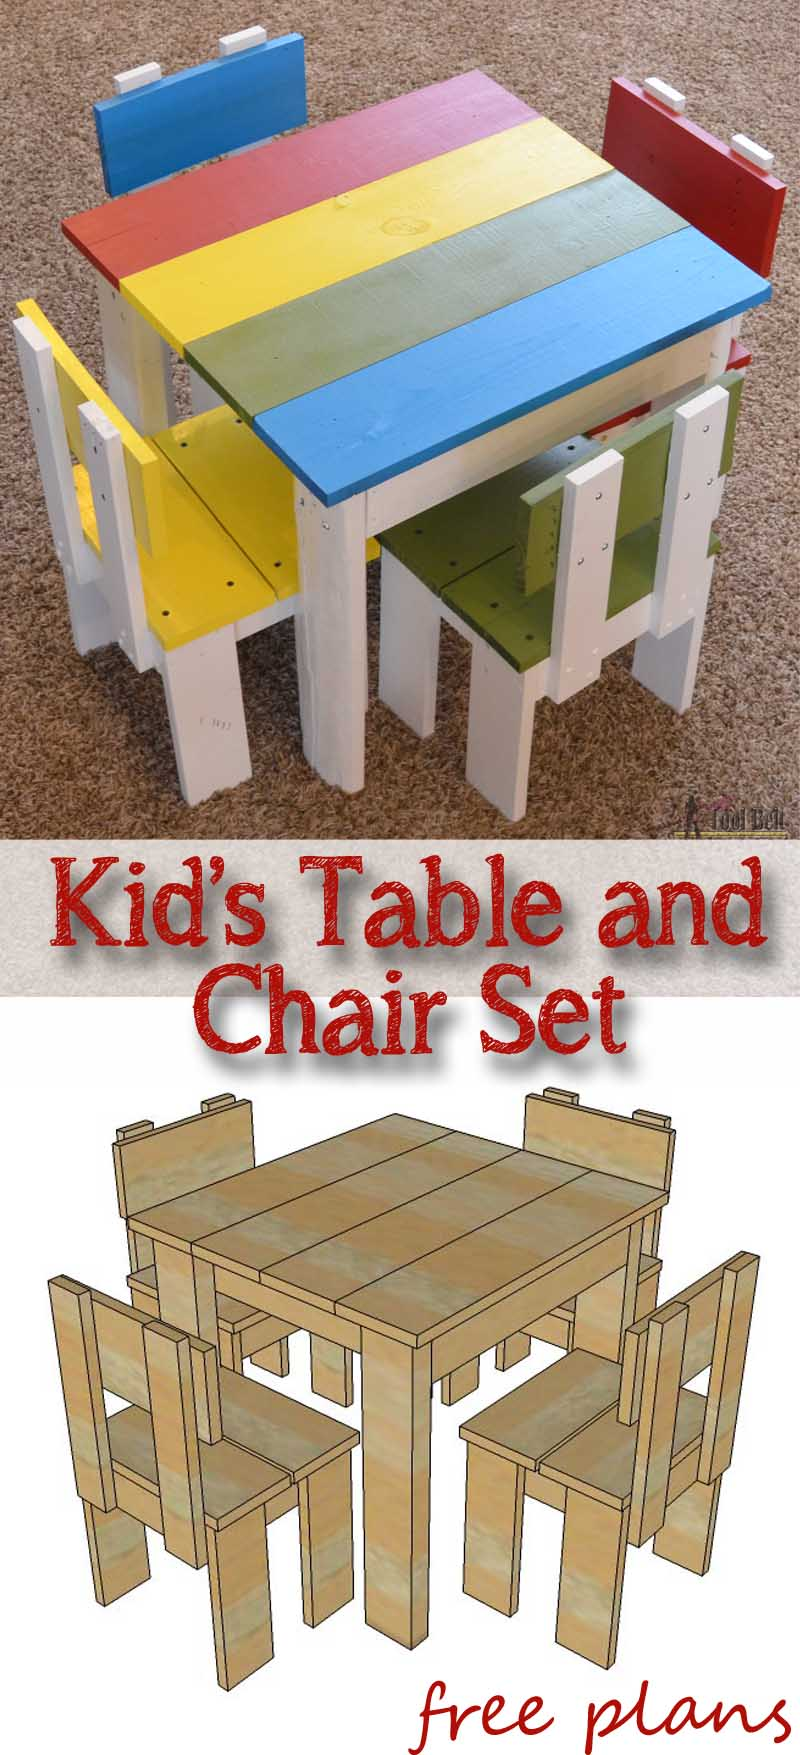 Astounding Simple Kids Table And Chair Set Her Tool Belt Squirreltailoven Fun Painted Chair Ideas Images Squirreltailovenorg